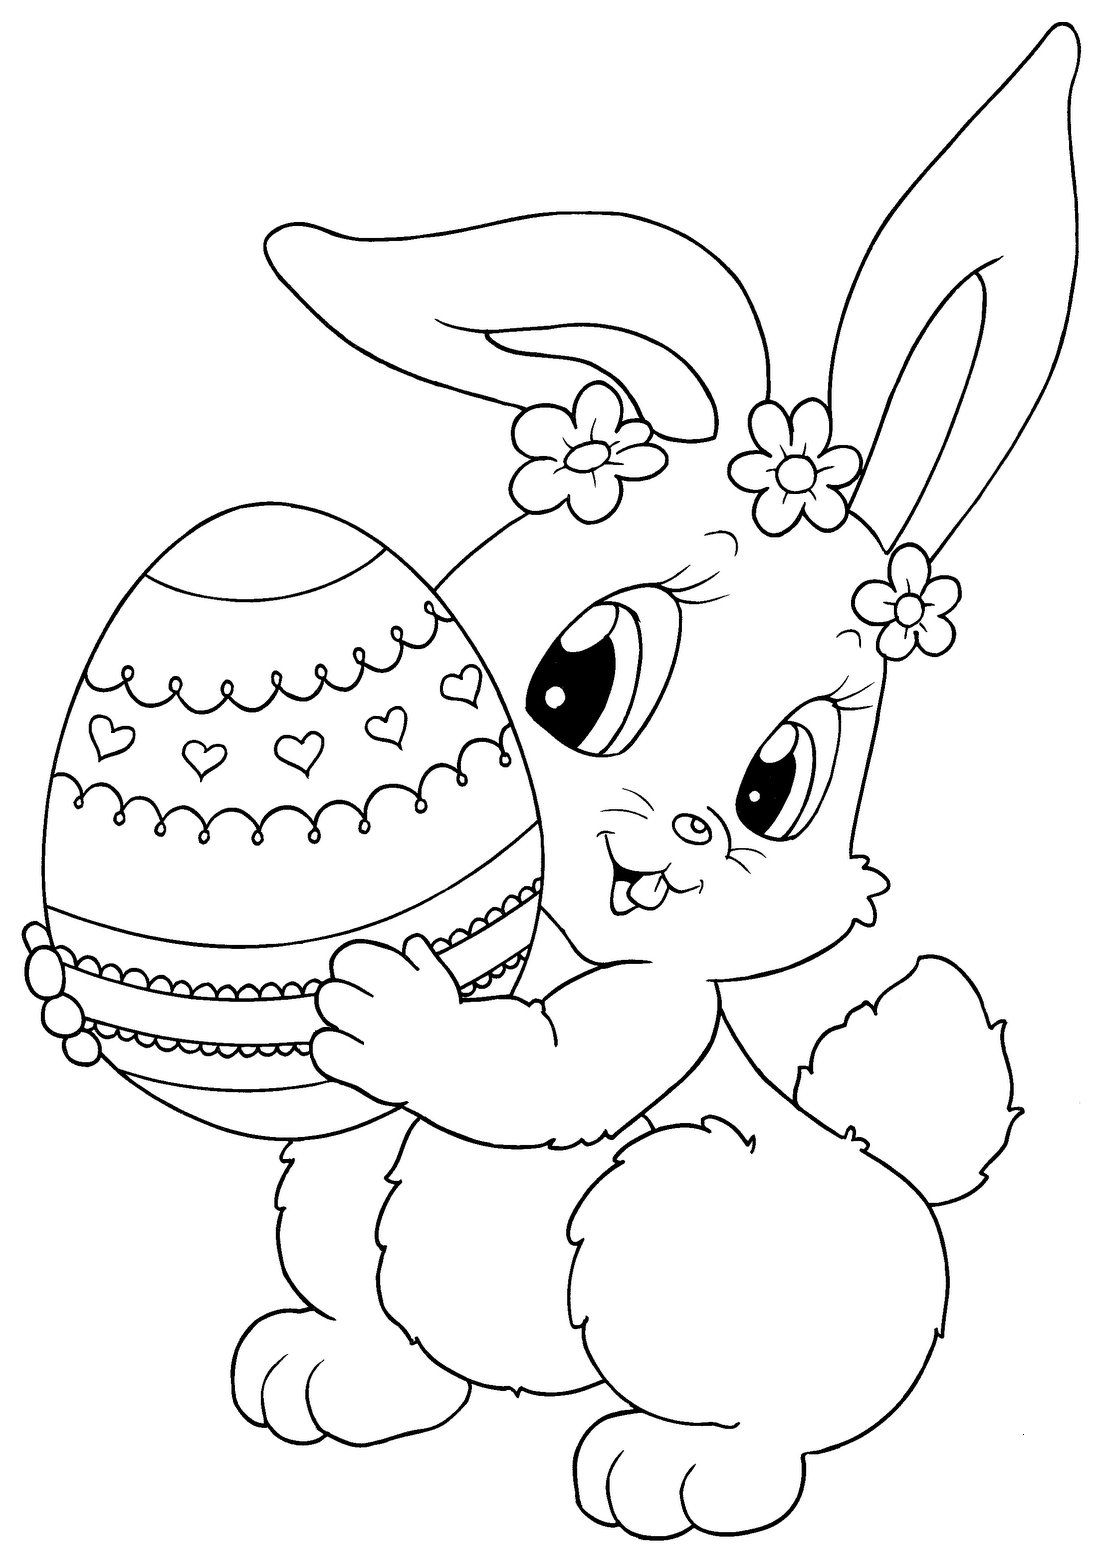 Top 15 Free Printable Easter Bunny Coloring Pages Line Gallery Of Easter Coloring Pages for Kids Crazy Little Projects Printable